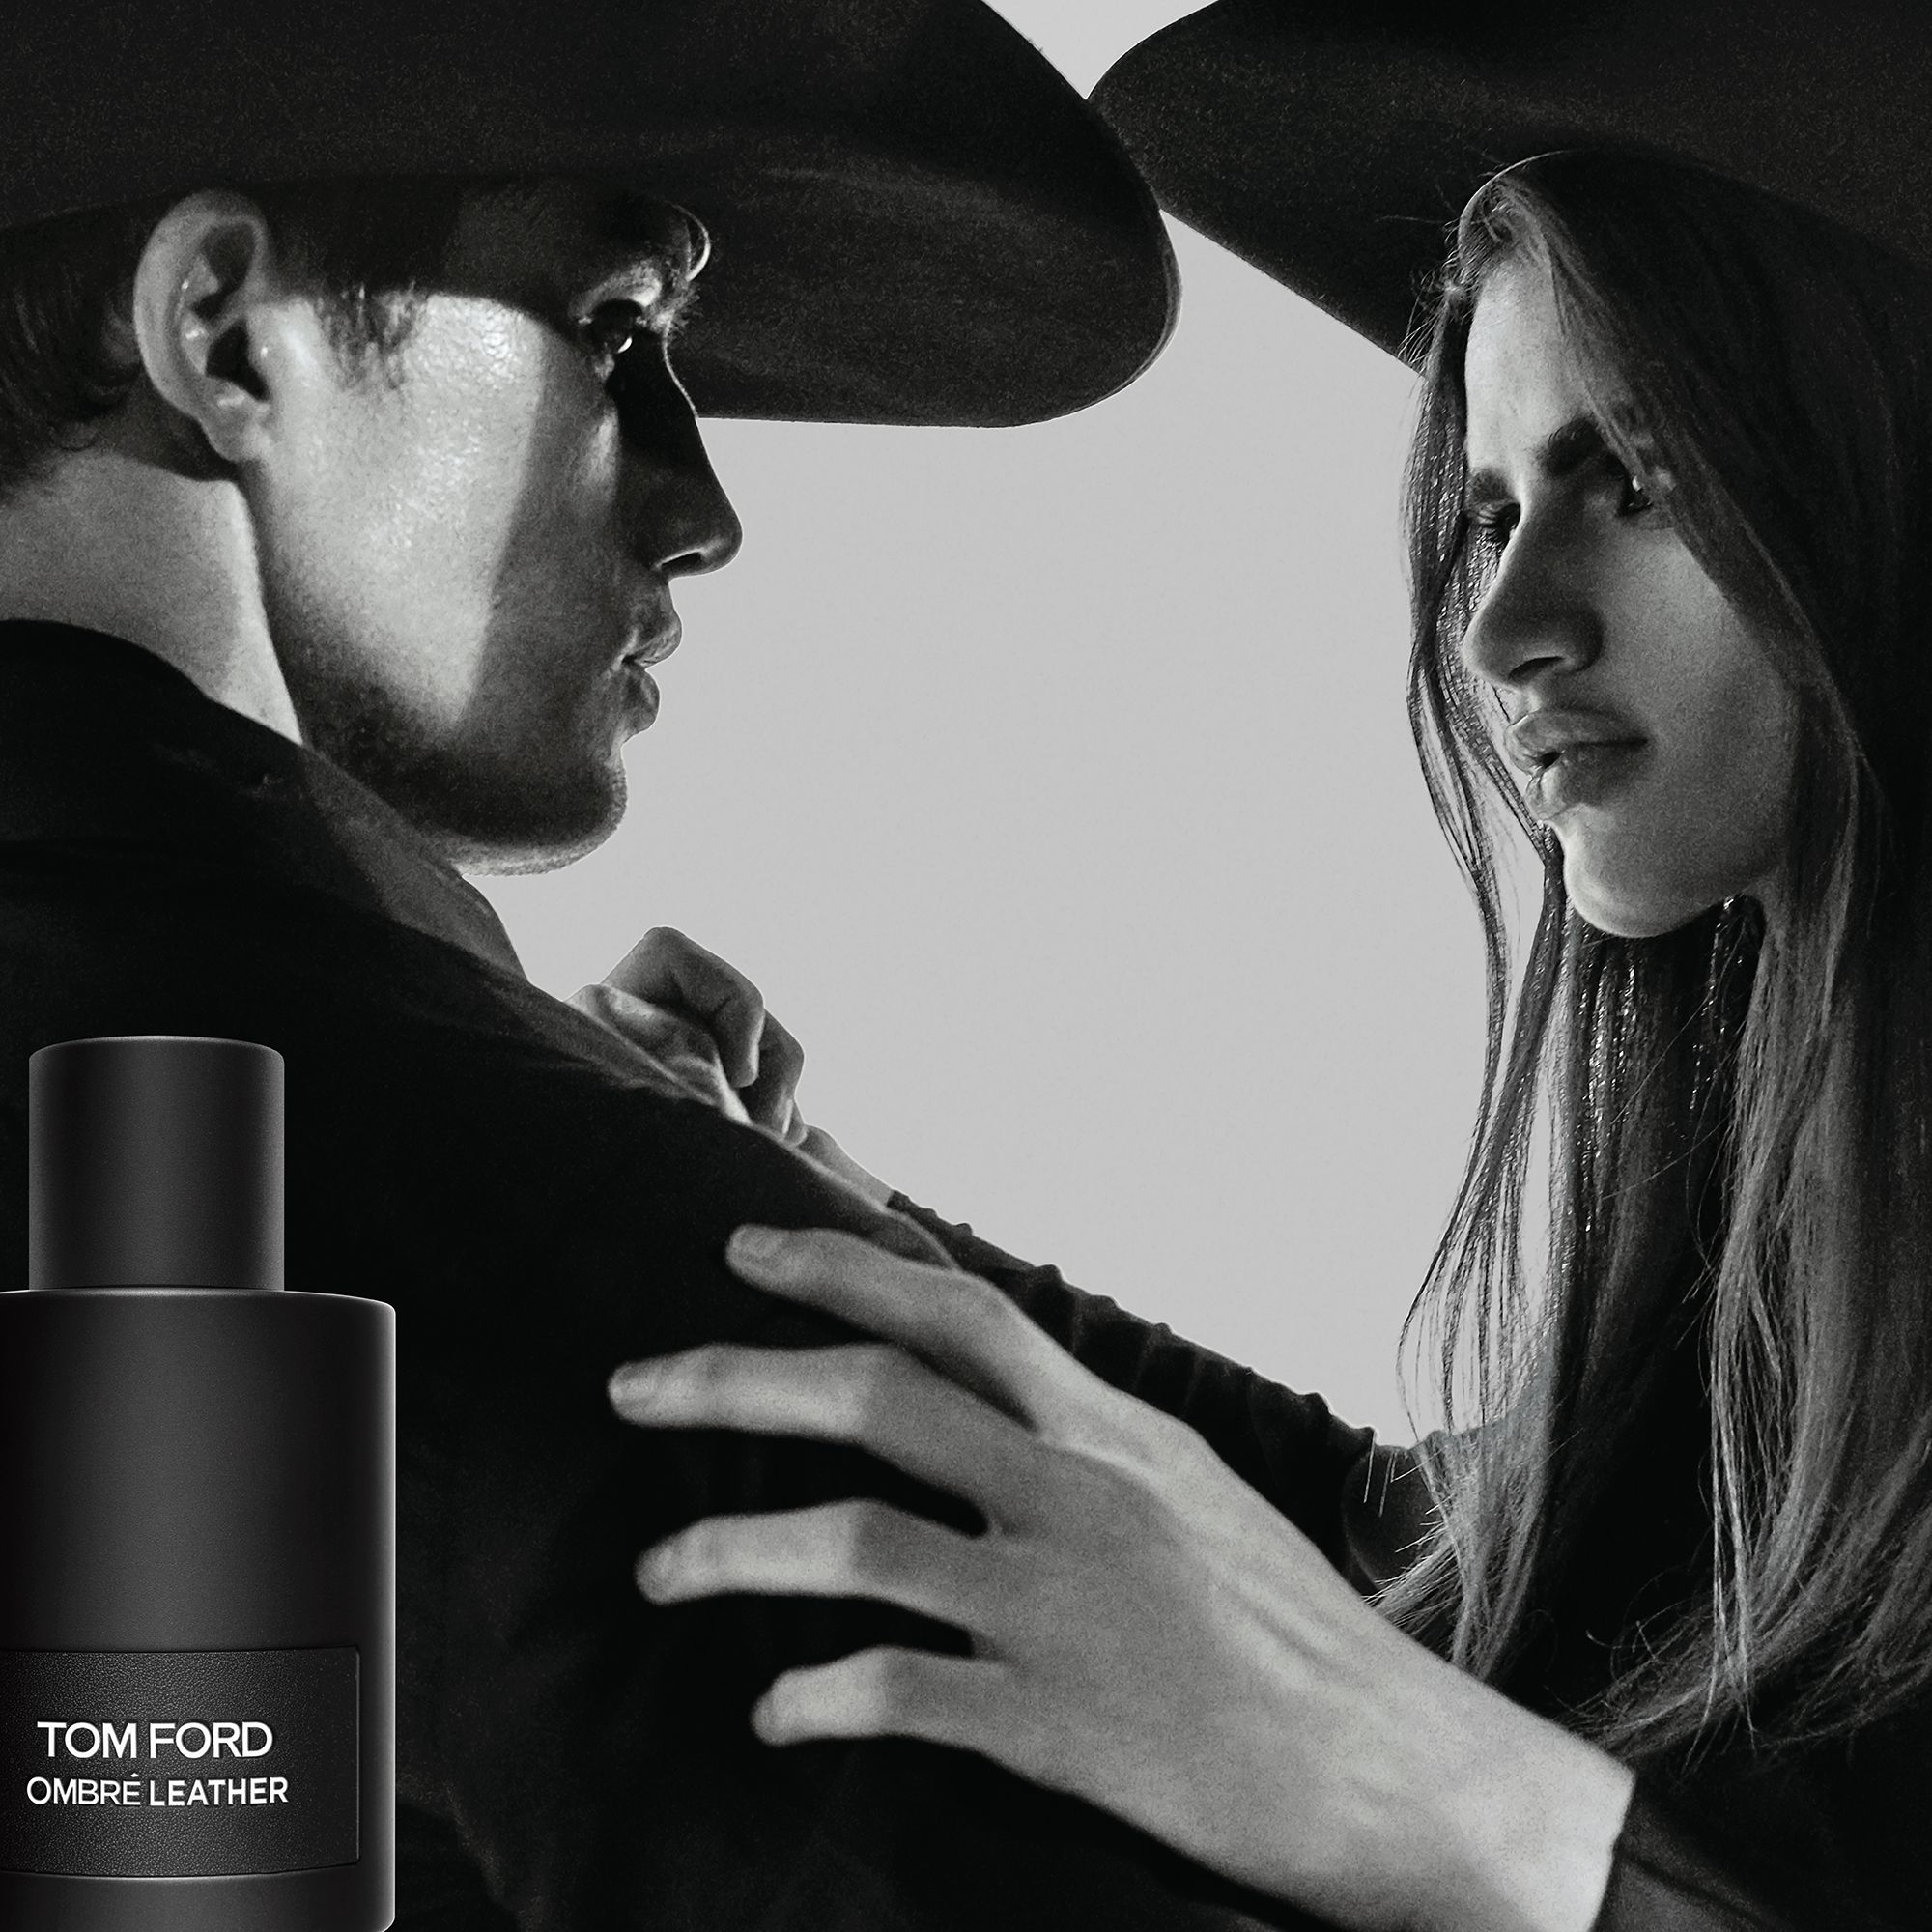 Ombre Leather With Images Tom Ford Tom Ford Private Blend